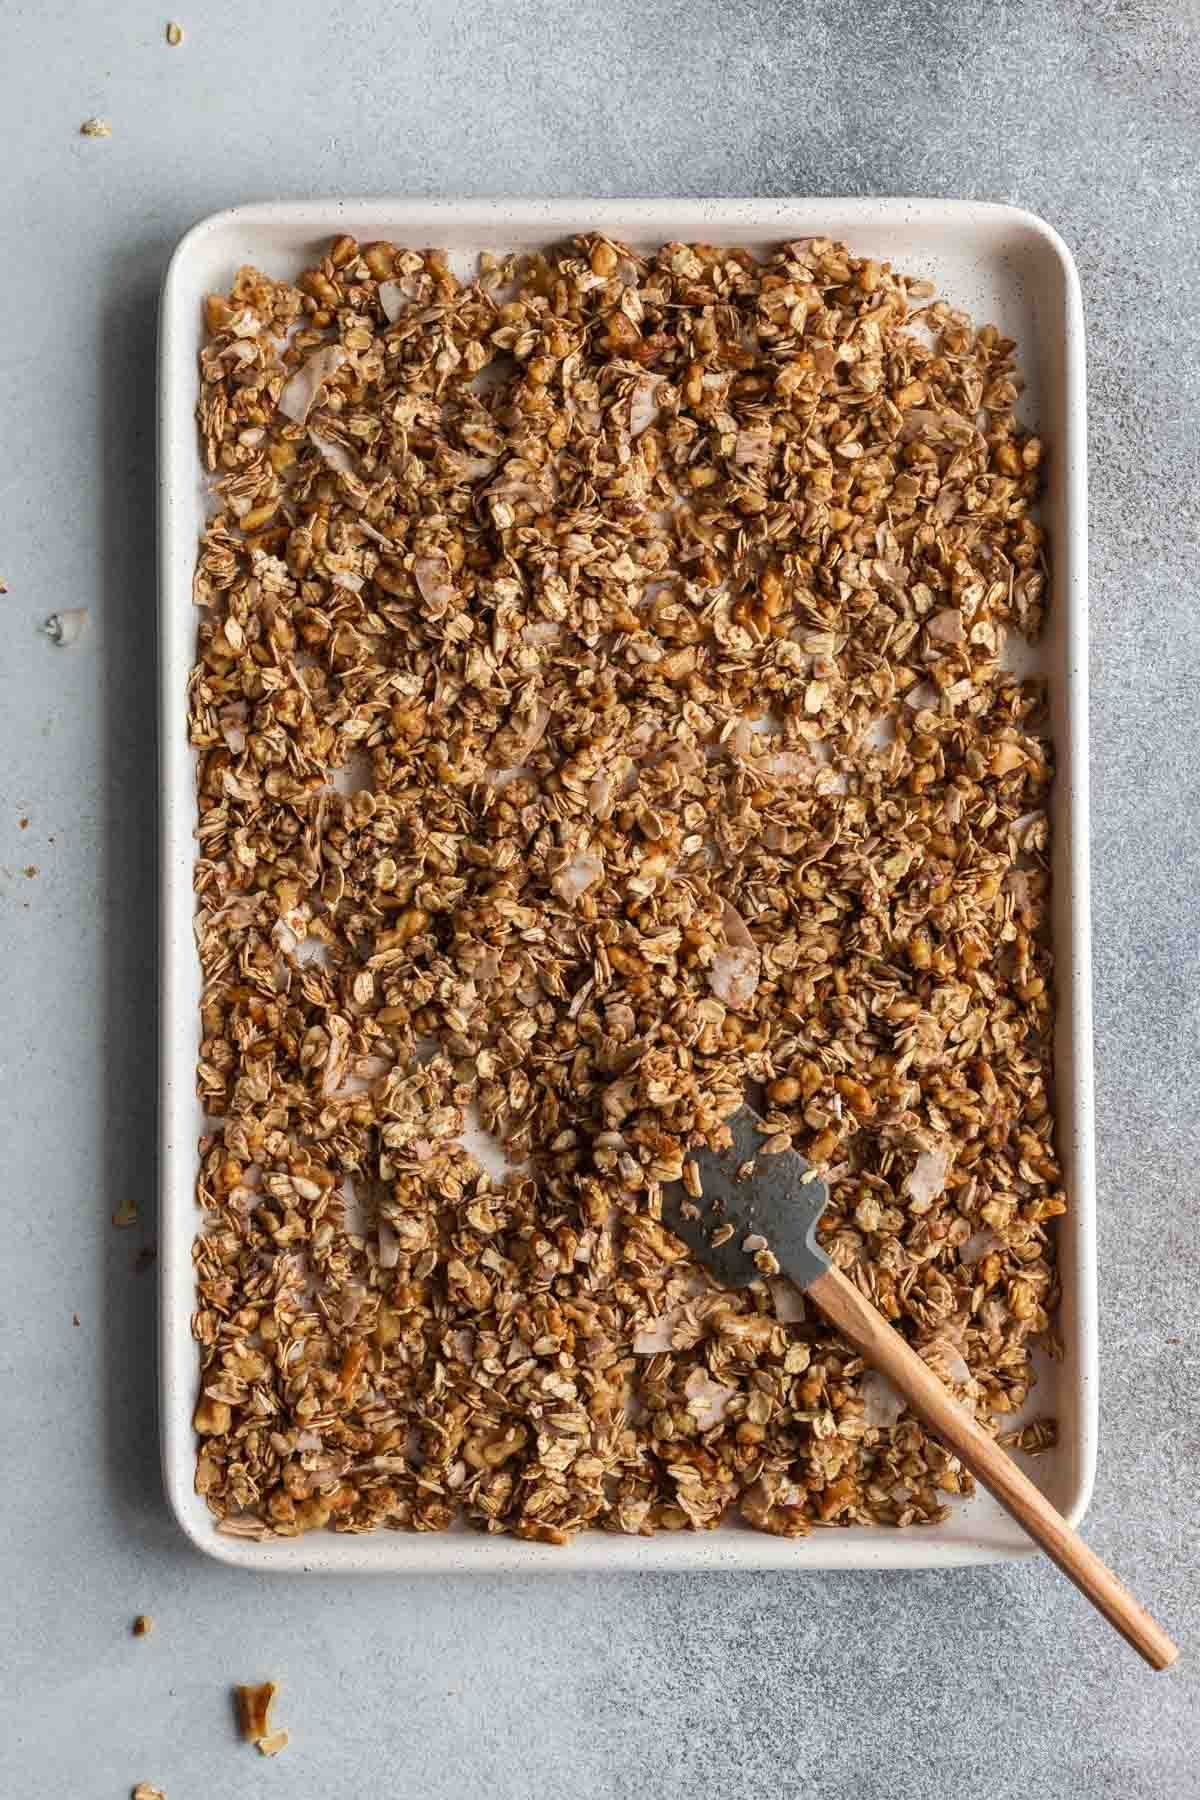 Maple walnut granola spread out on a baking sheet and ready for the oven.